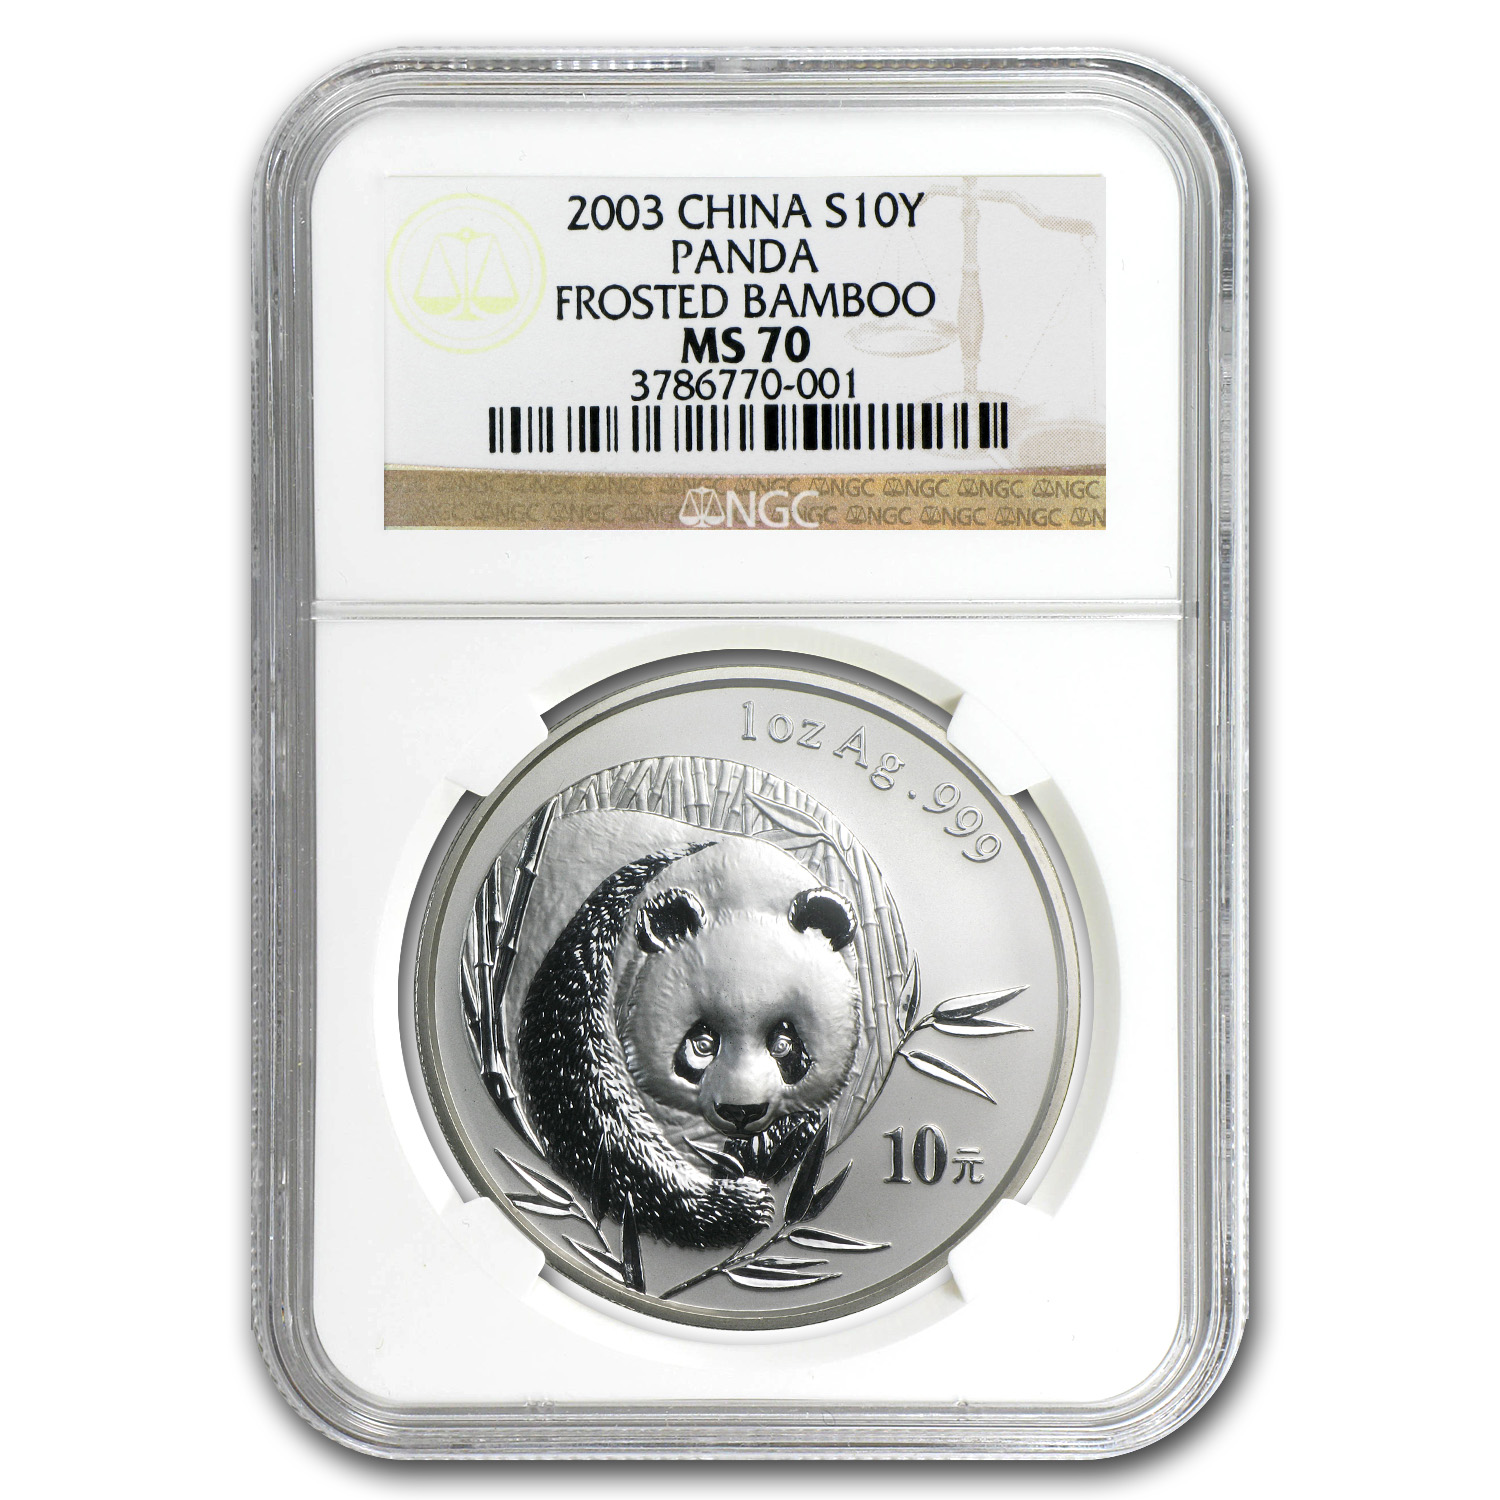 2003 China 1 oz Silver Panda MS-70 NGC (Frosted Bamboo)